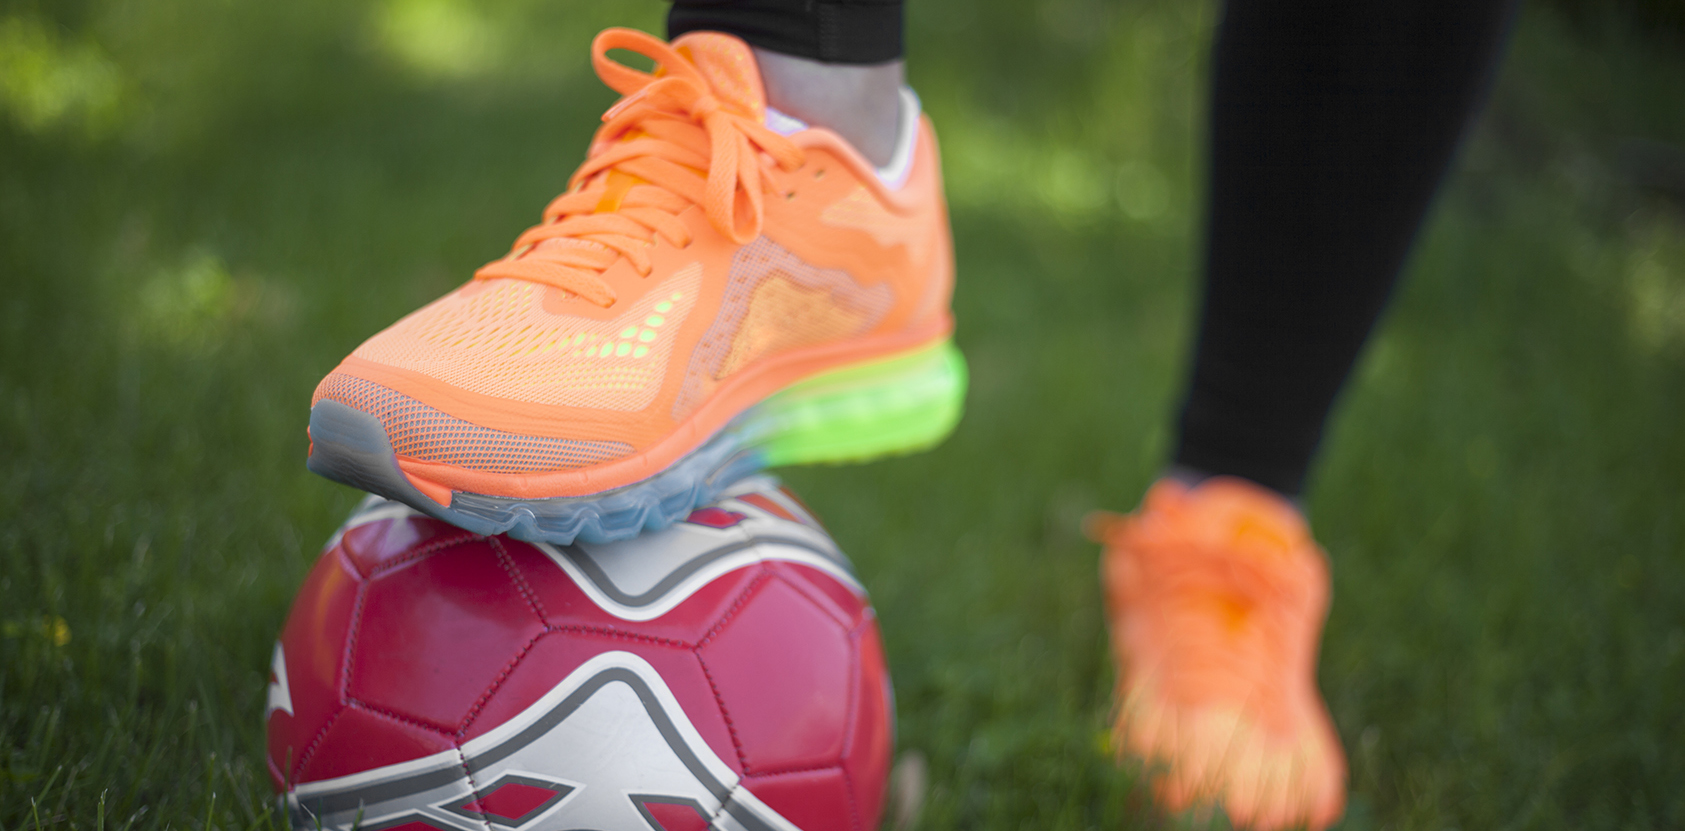 Foot wearing a bright orange shoe on soccer ball